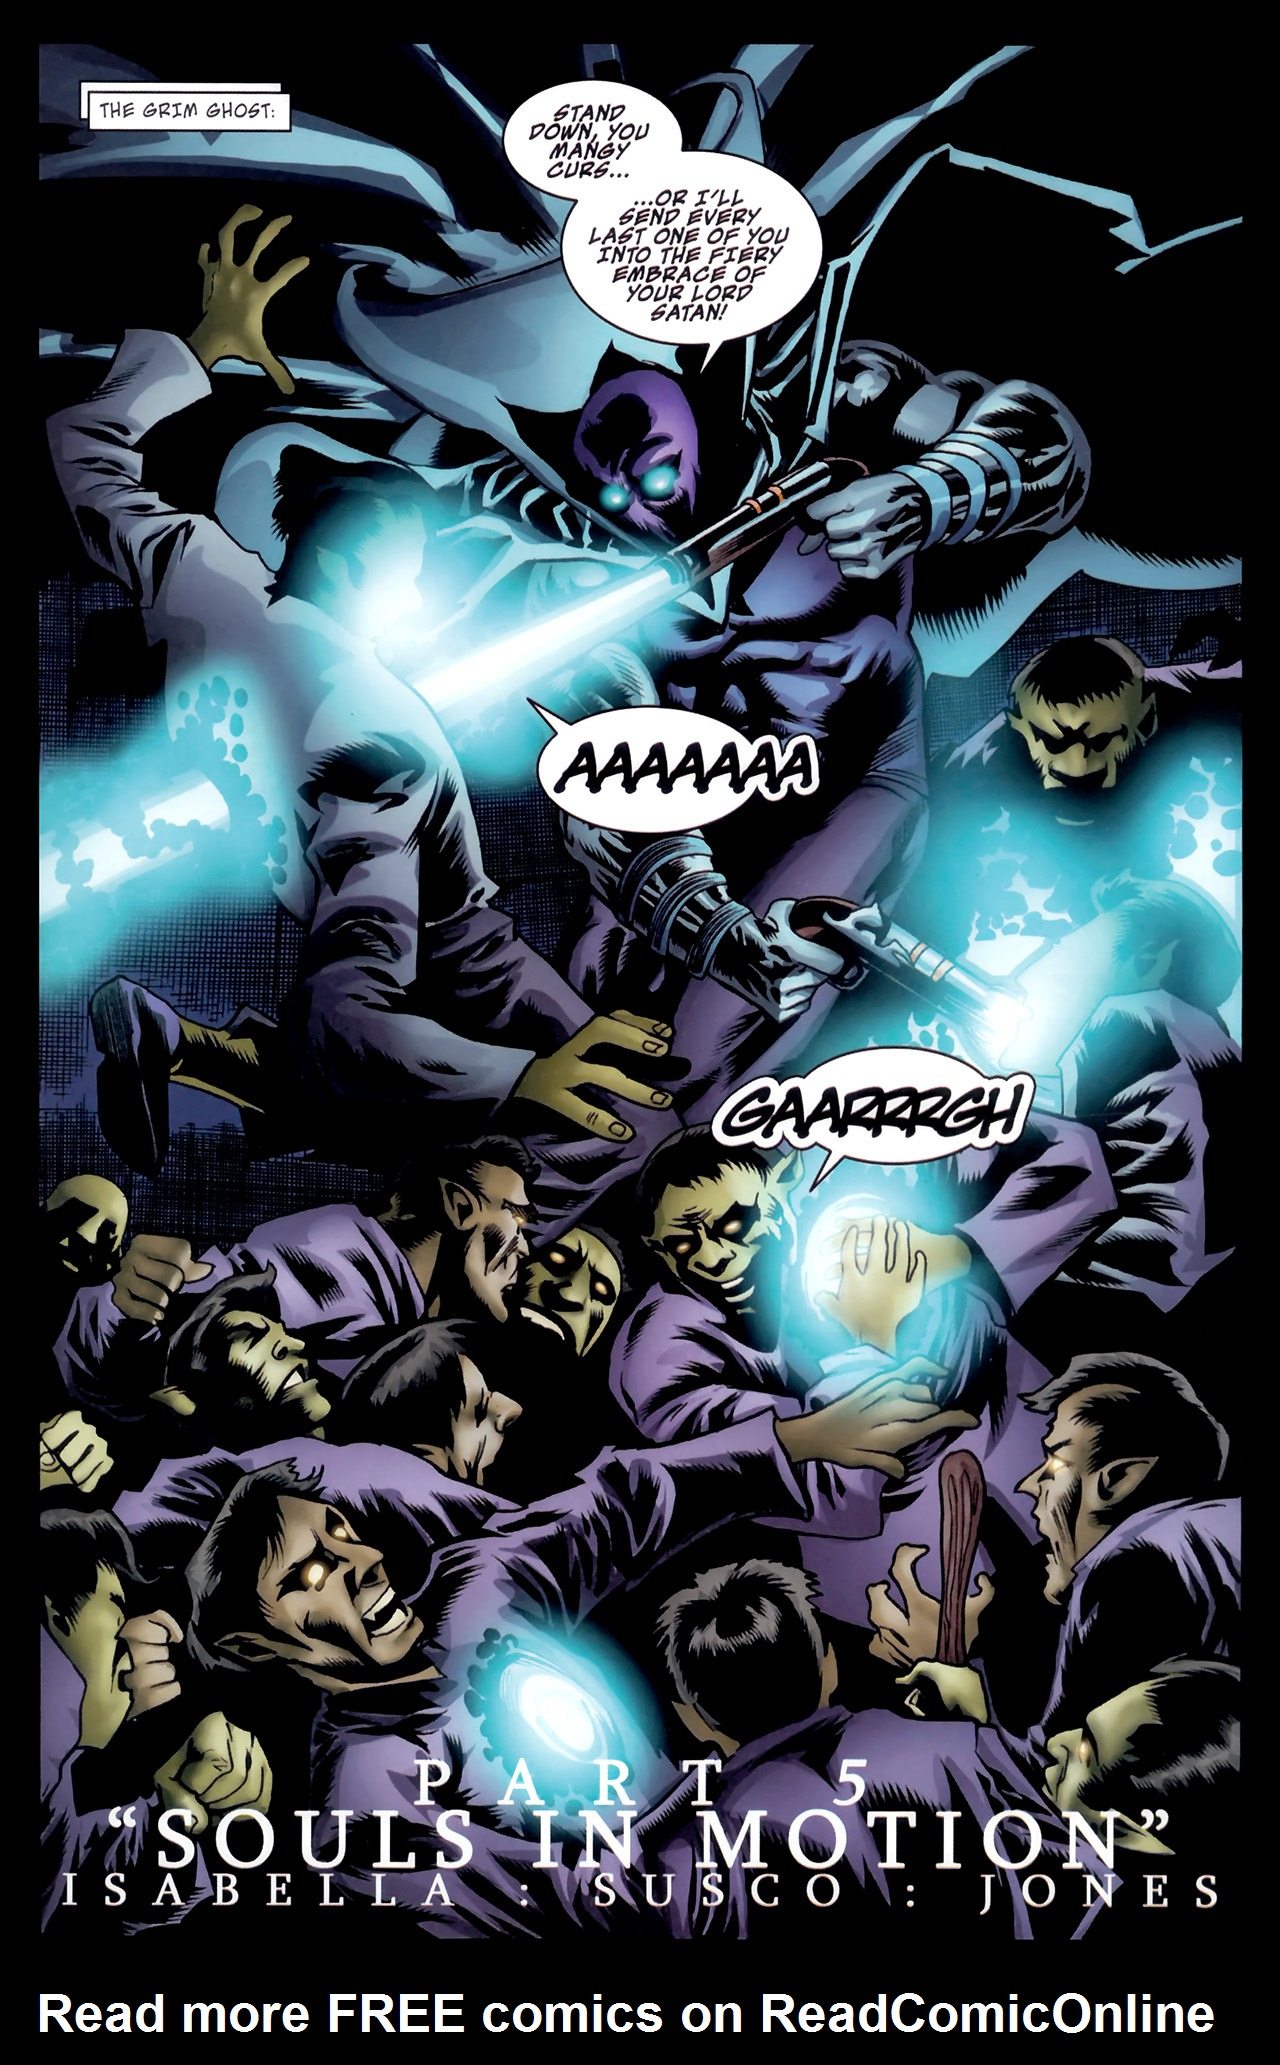 Read online The Grim Ghost comic -  Issue #5 - 5